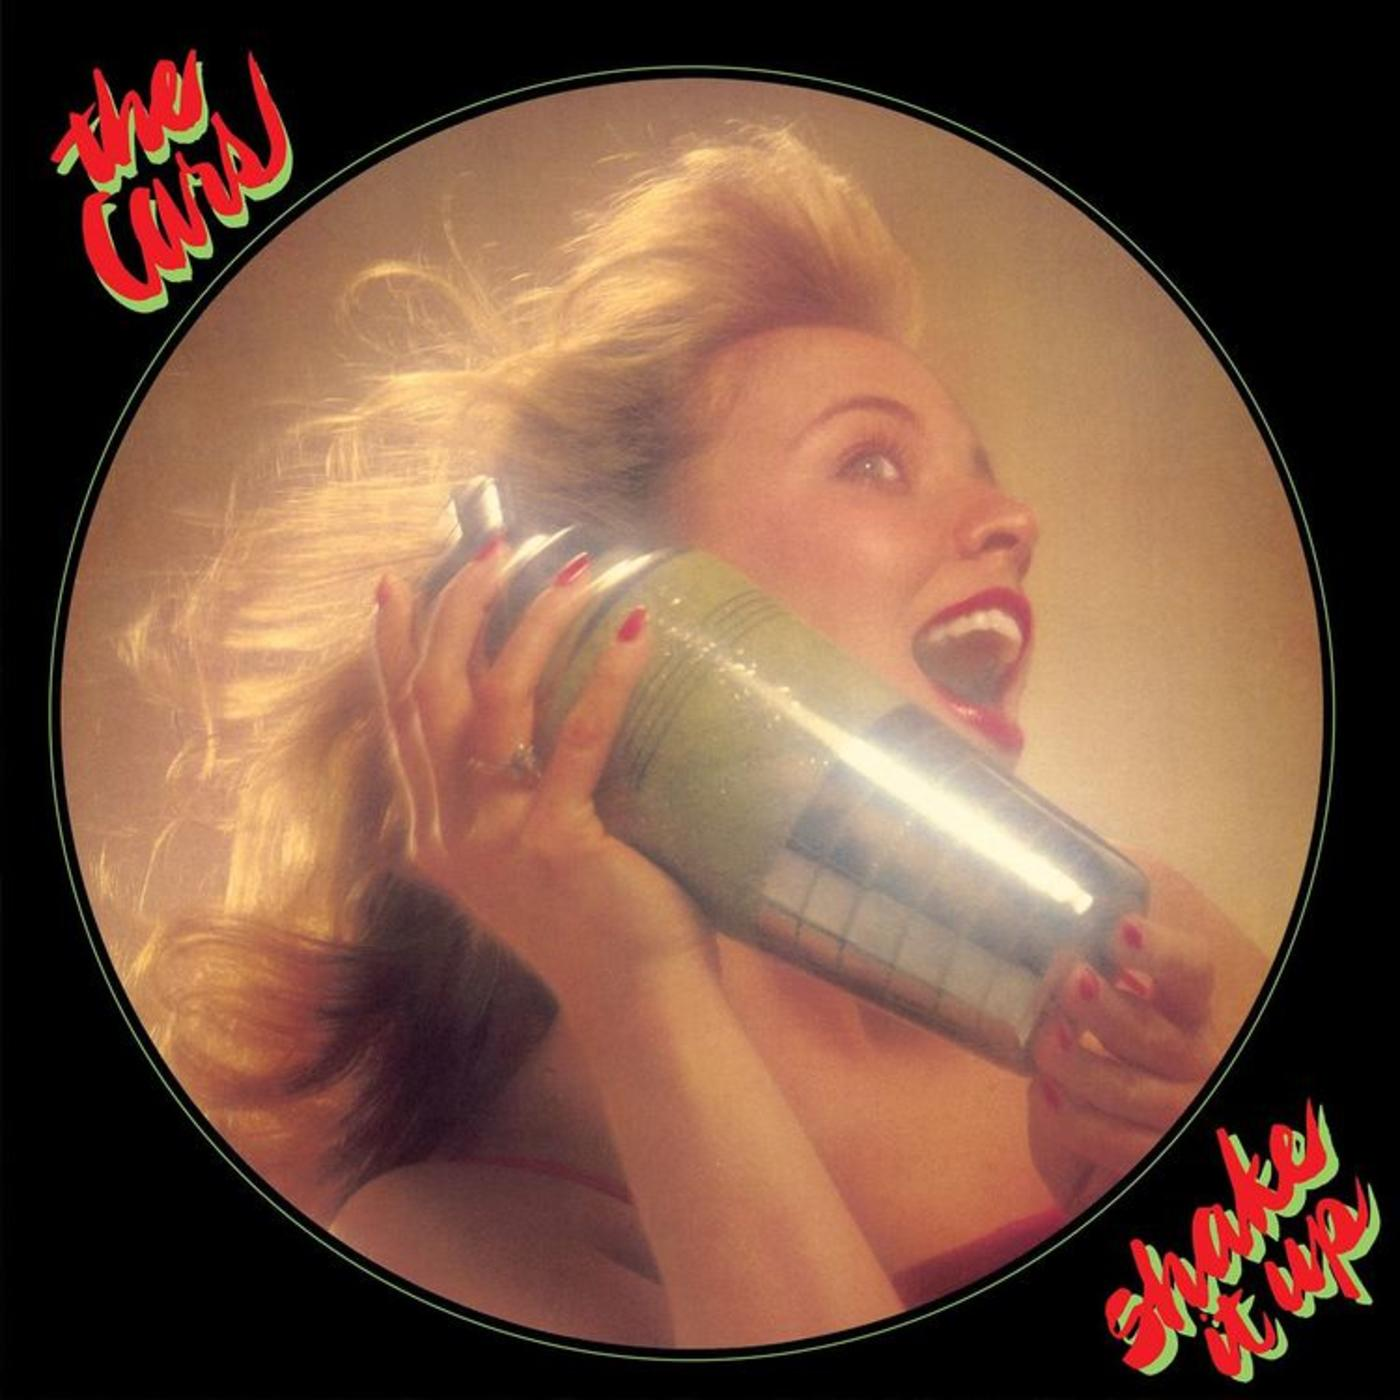 The Cars - Shake It Up Limited Edition Neon Green Colour Vinyl Record Album